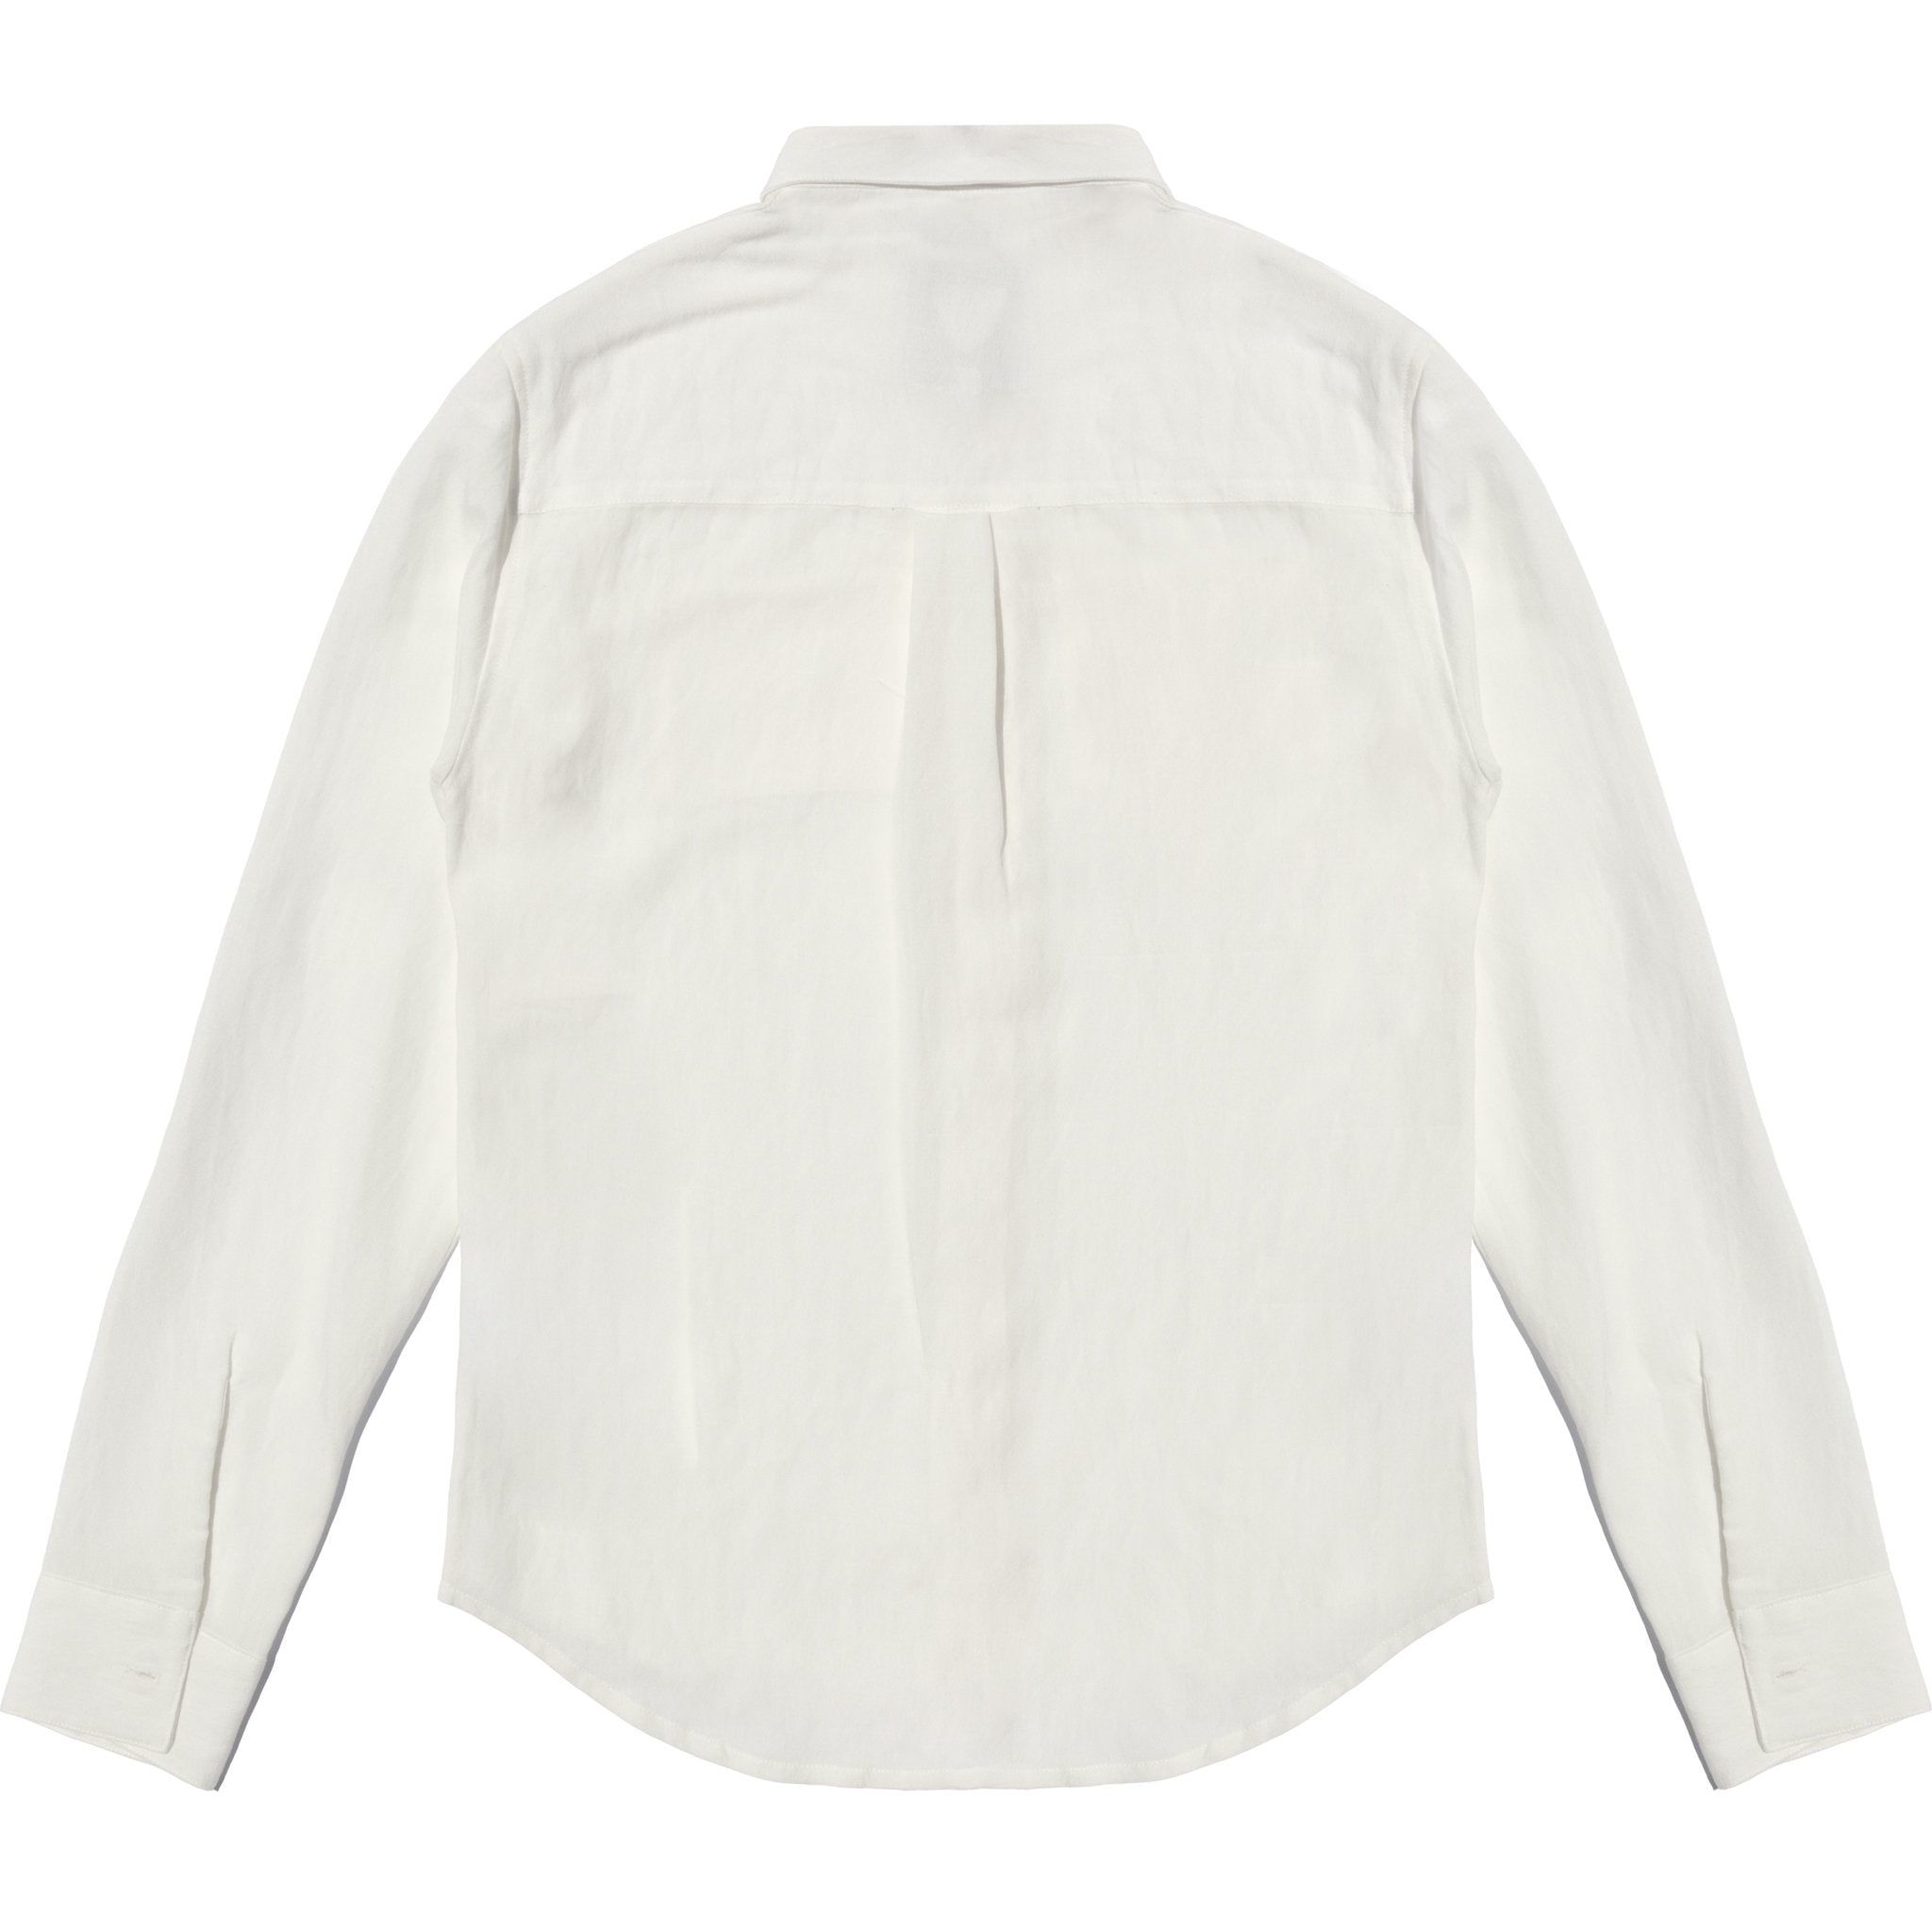 NAVISTAR LONG SLEEVE SHIRT - SIXELAR